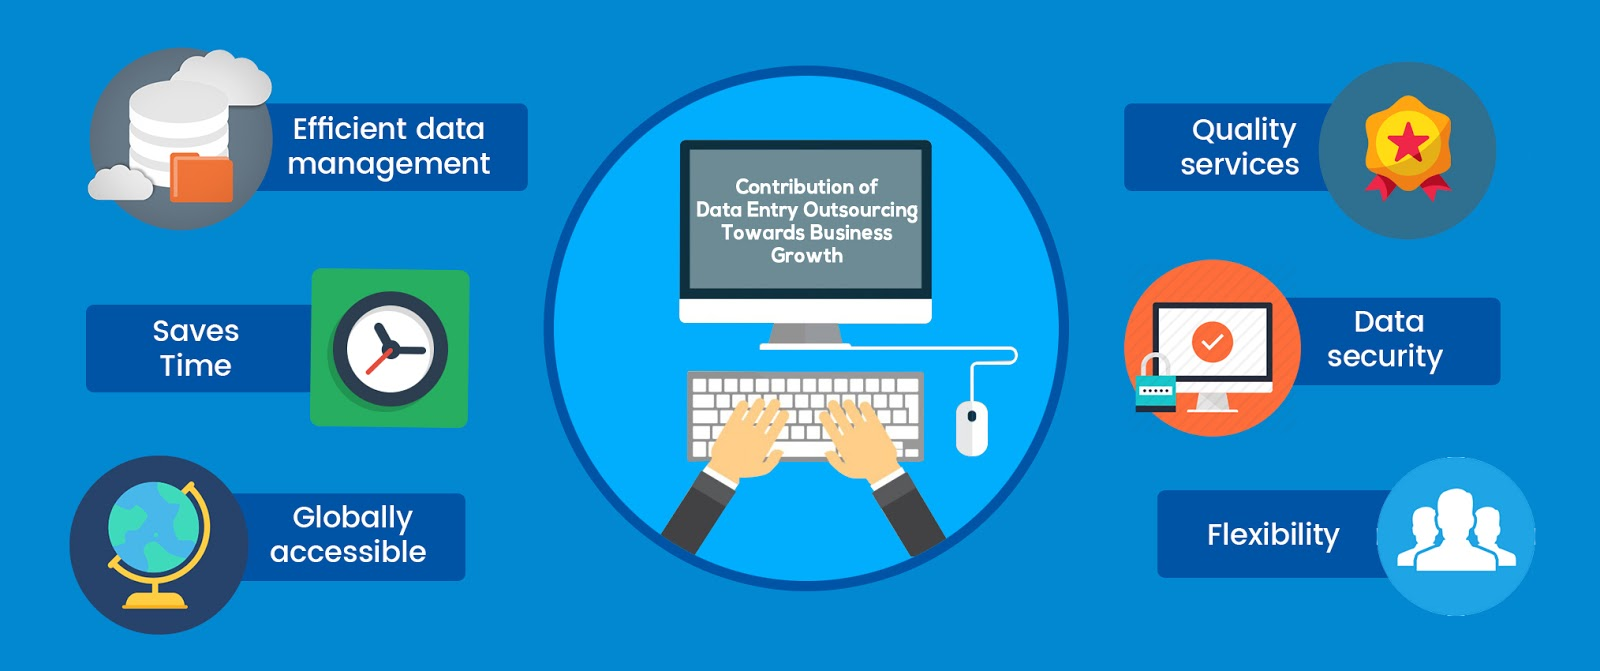 Key Contribution of Data Entry Outsourcing